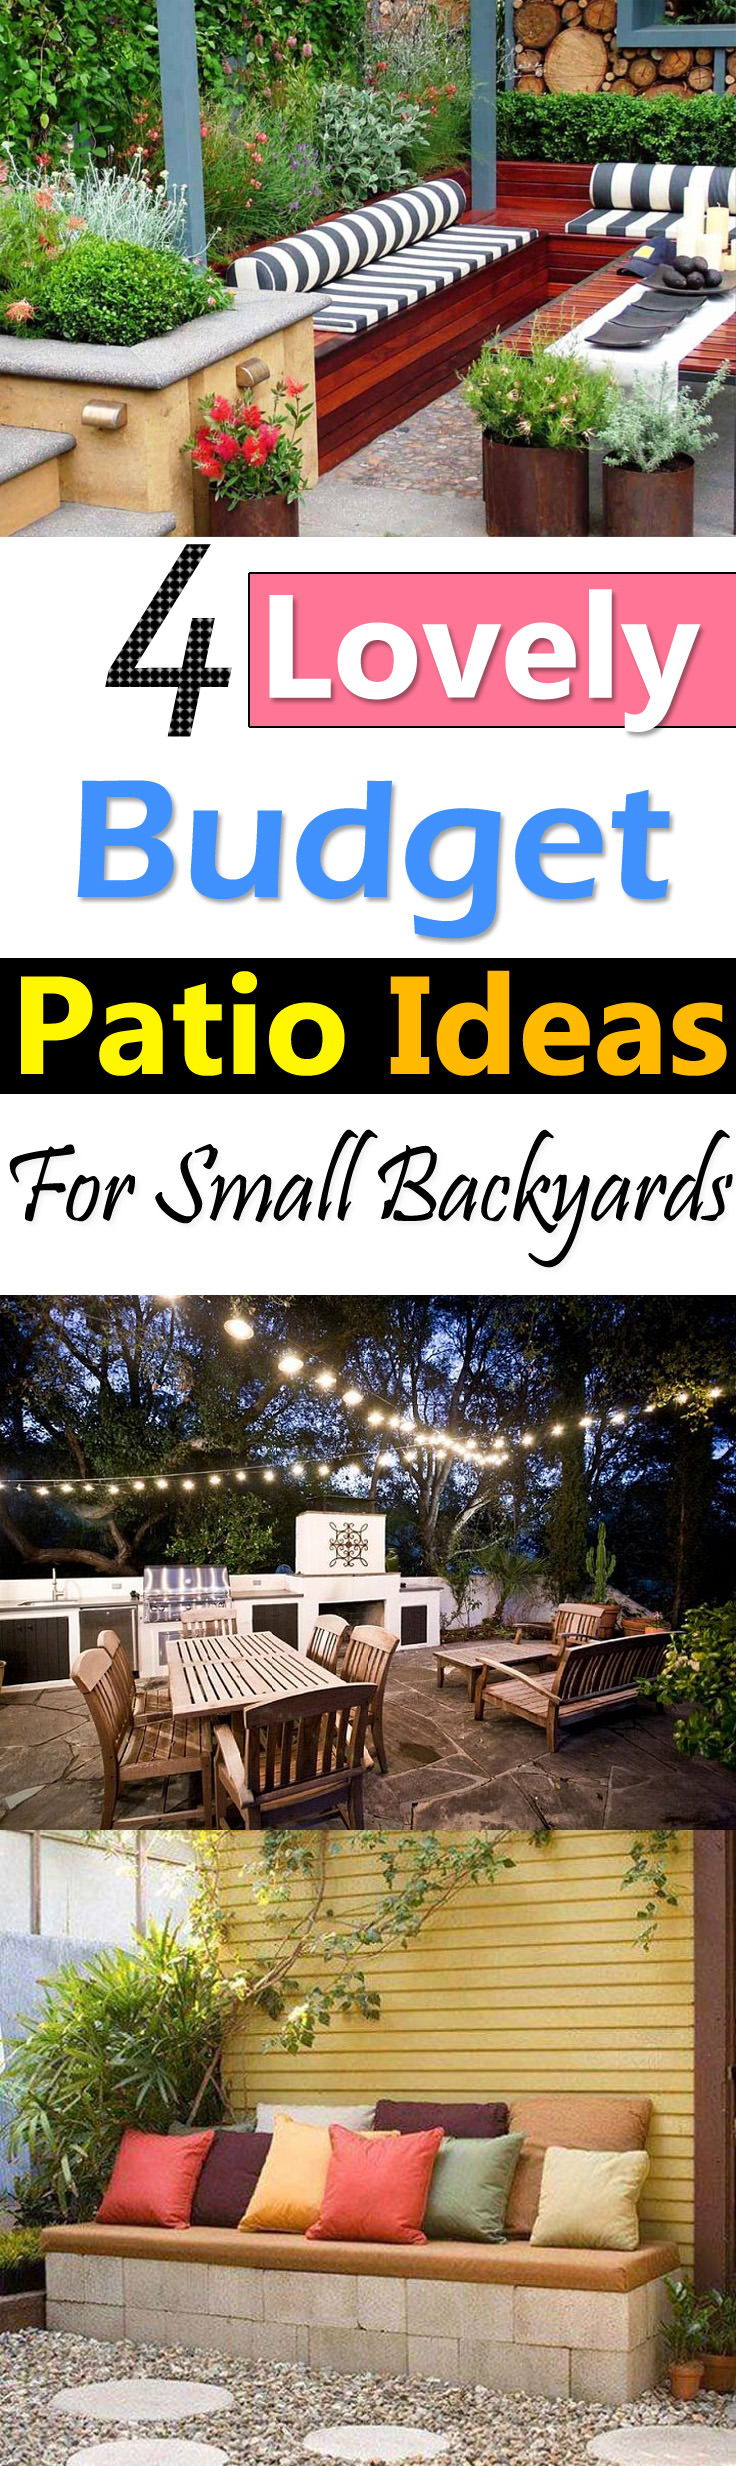 4 Lovely Budget Patio Ideas For Small Backyards Balcony Garden Web regarding 14 Smart Concepts of How to Makeover Ideas For Small Backyard Spaces